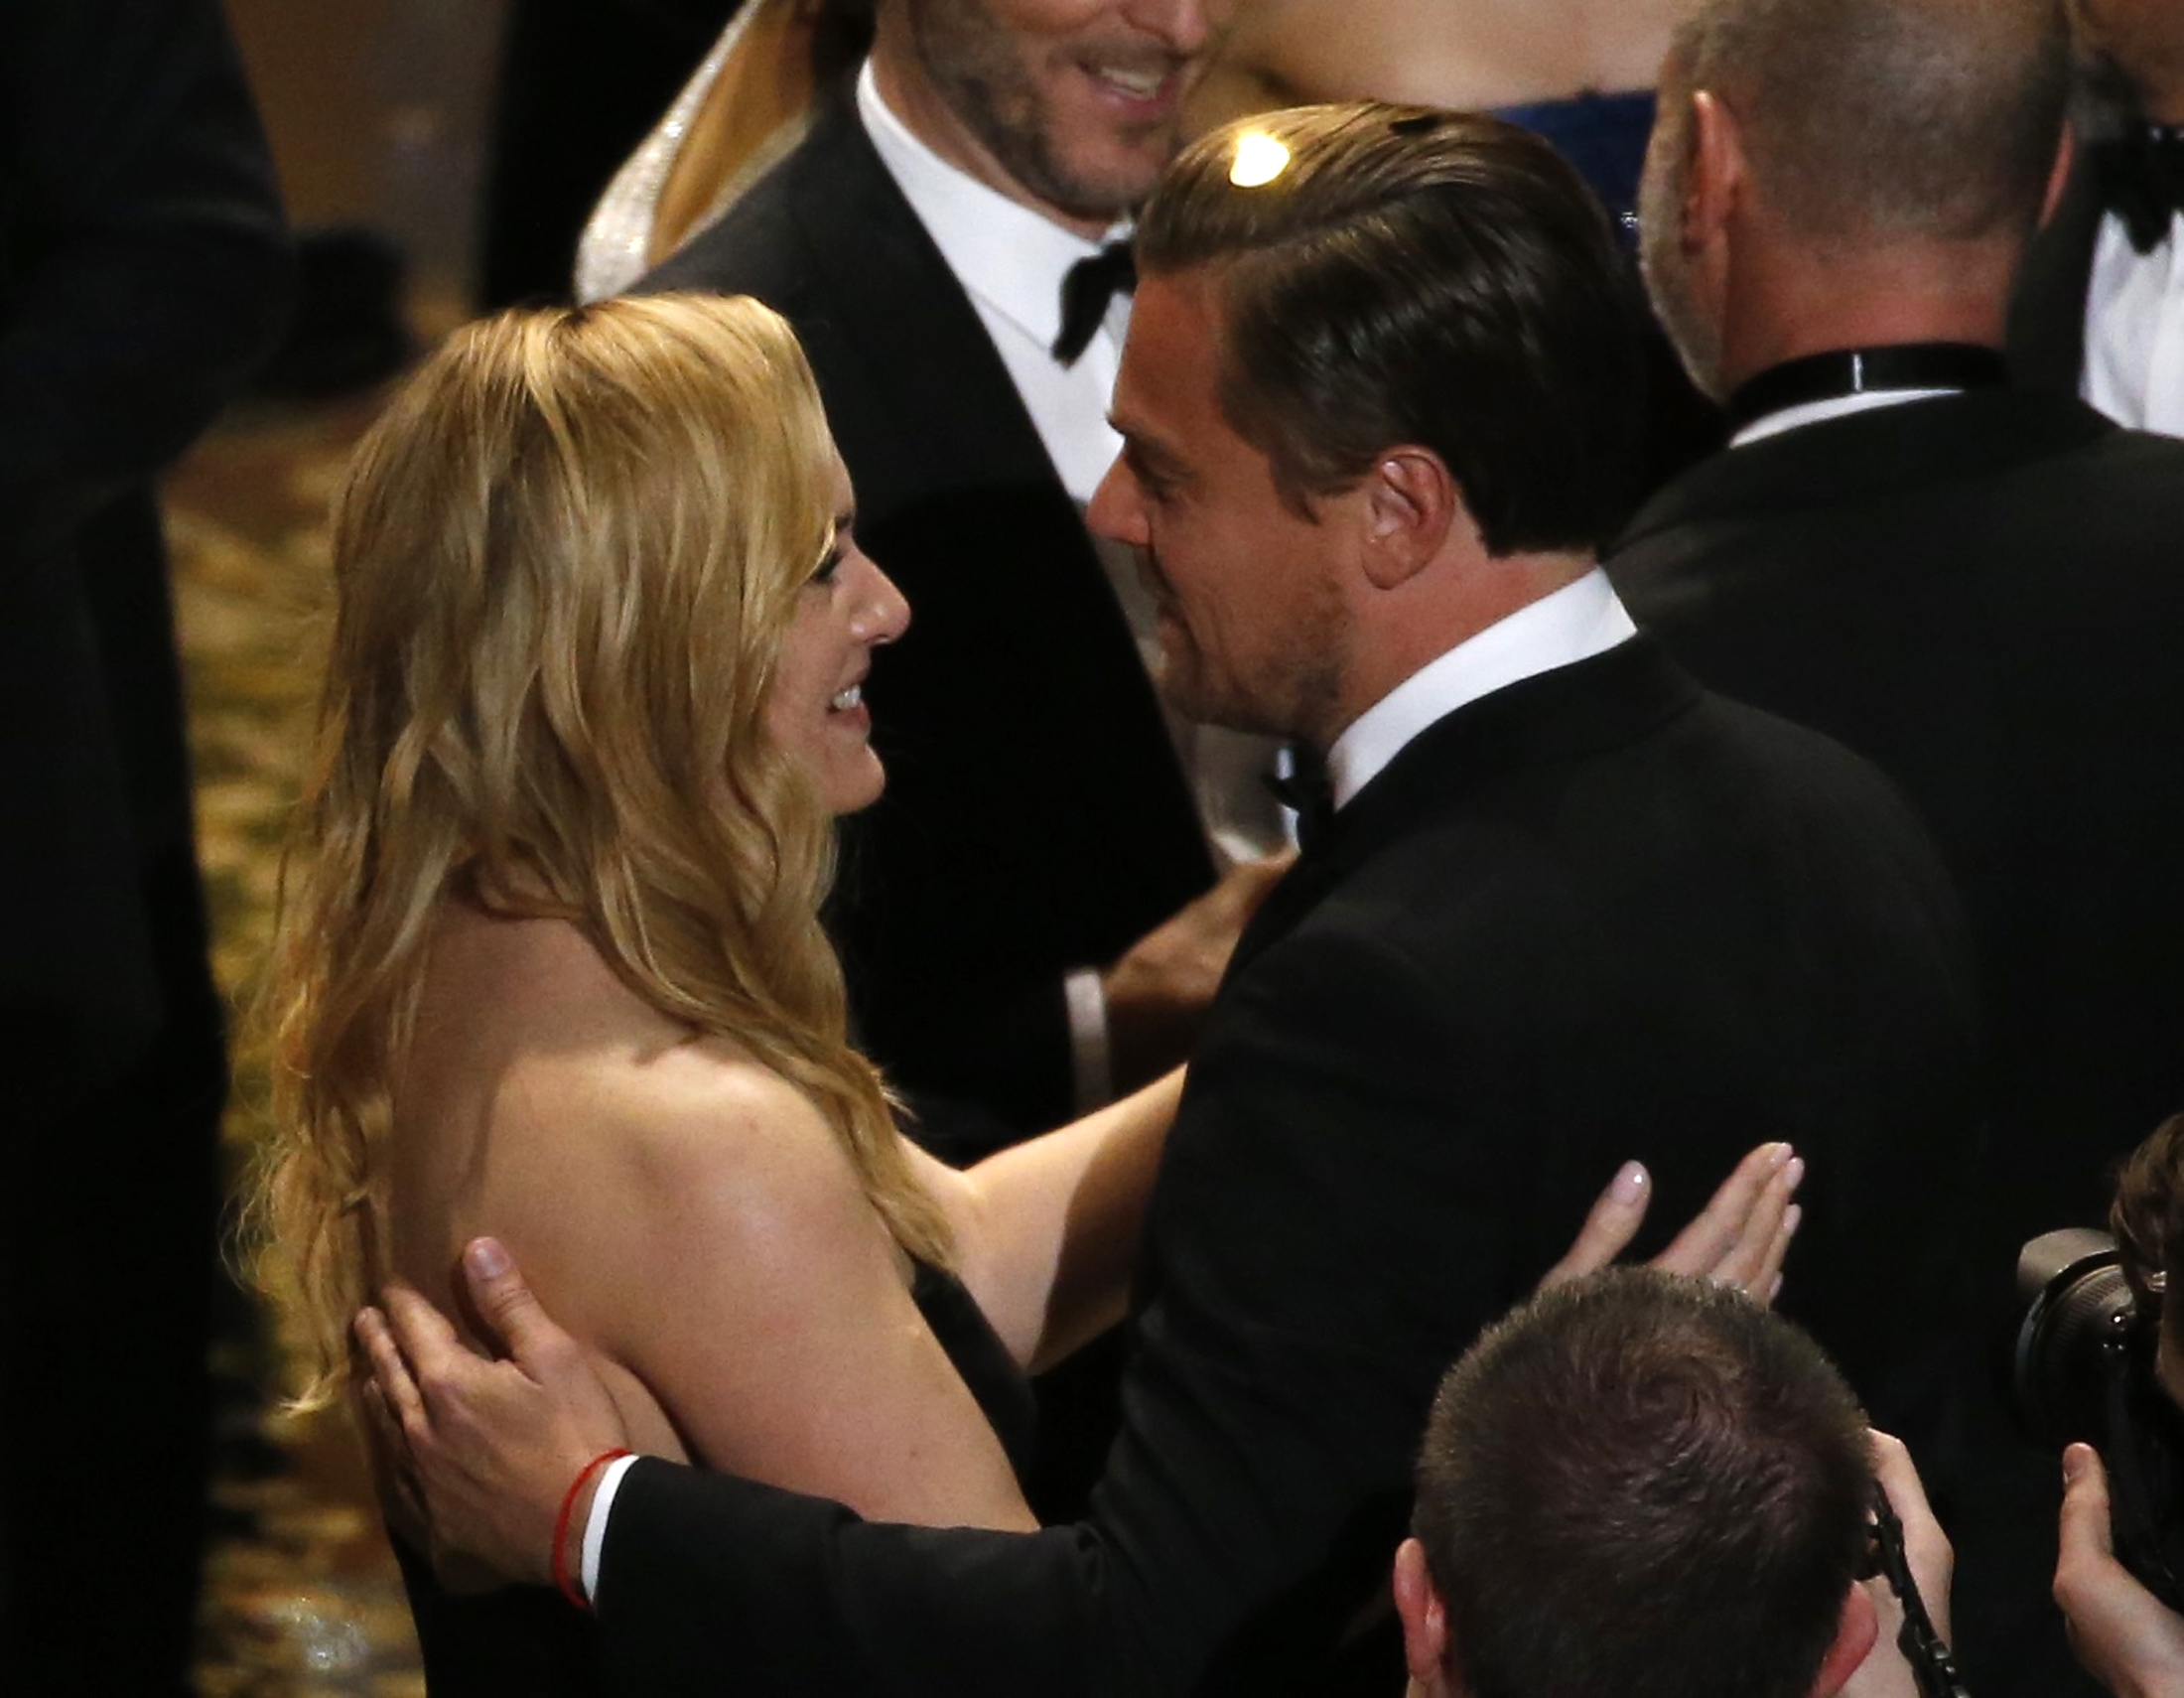 Leonardo DiCaprio and Kate Winslet (L) talk after the end of the award ceremony at the 88th Academy Awards in Hollywood, California February 28, 2016.   REUTERS/Mario Anzuoni   - TB3EC2T0EQCXN